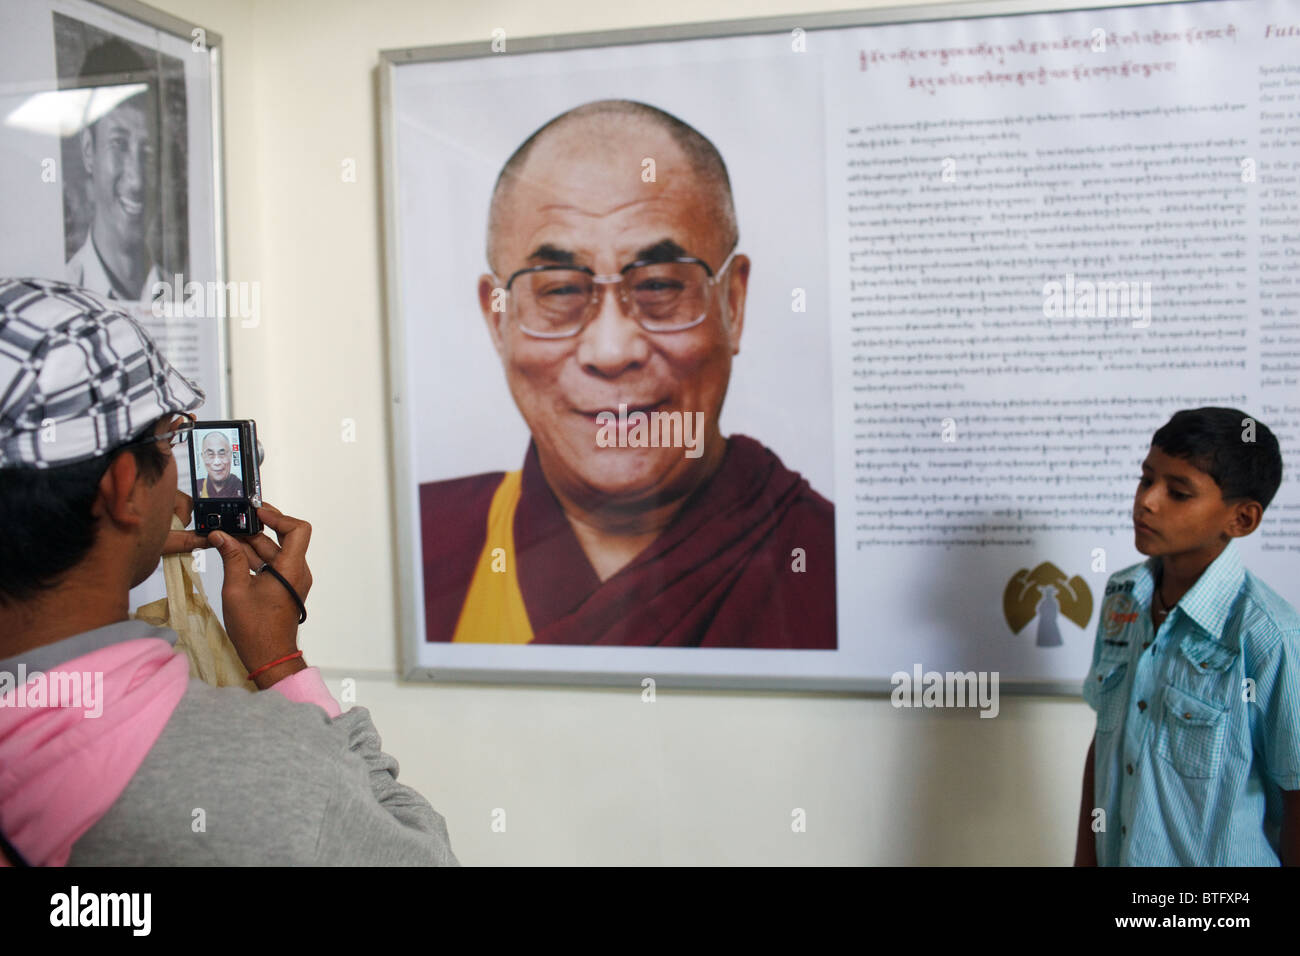 A person takes a photo of a portrait of Dalai Lama in a museum in McLeod Ganj, Dharamshala, India - Stock Image